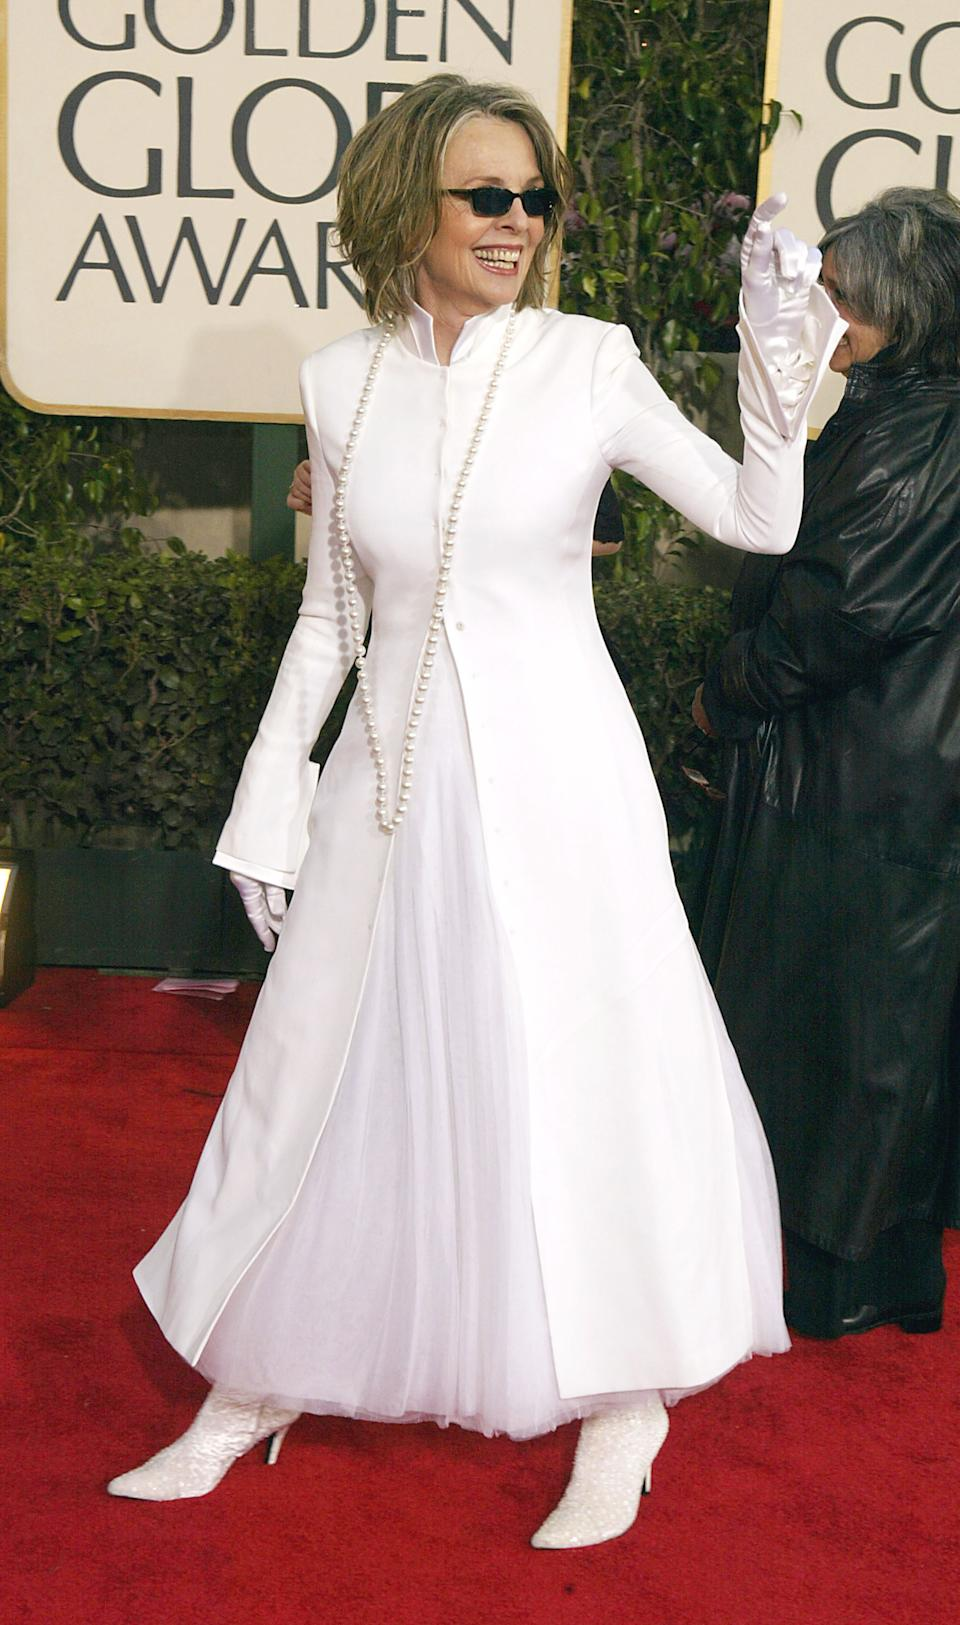 "<p>Diane Keaton may have taken home the prize for Best Performance by an Actress in a Motion Picture - Musical or Comedy for her role in ""Something's Gotta Give,"" at the 2004 Golden Globes, but she also had to go home with the shame of knowing she wore a lab coat to one of the most prestigious award ceremonies in Hollywood. (Image via Getty Images)</p>"